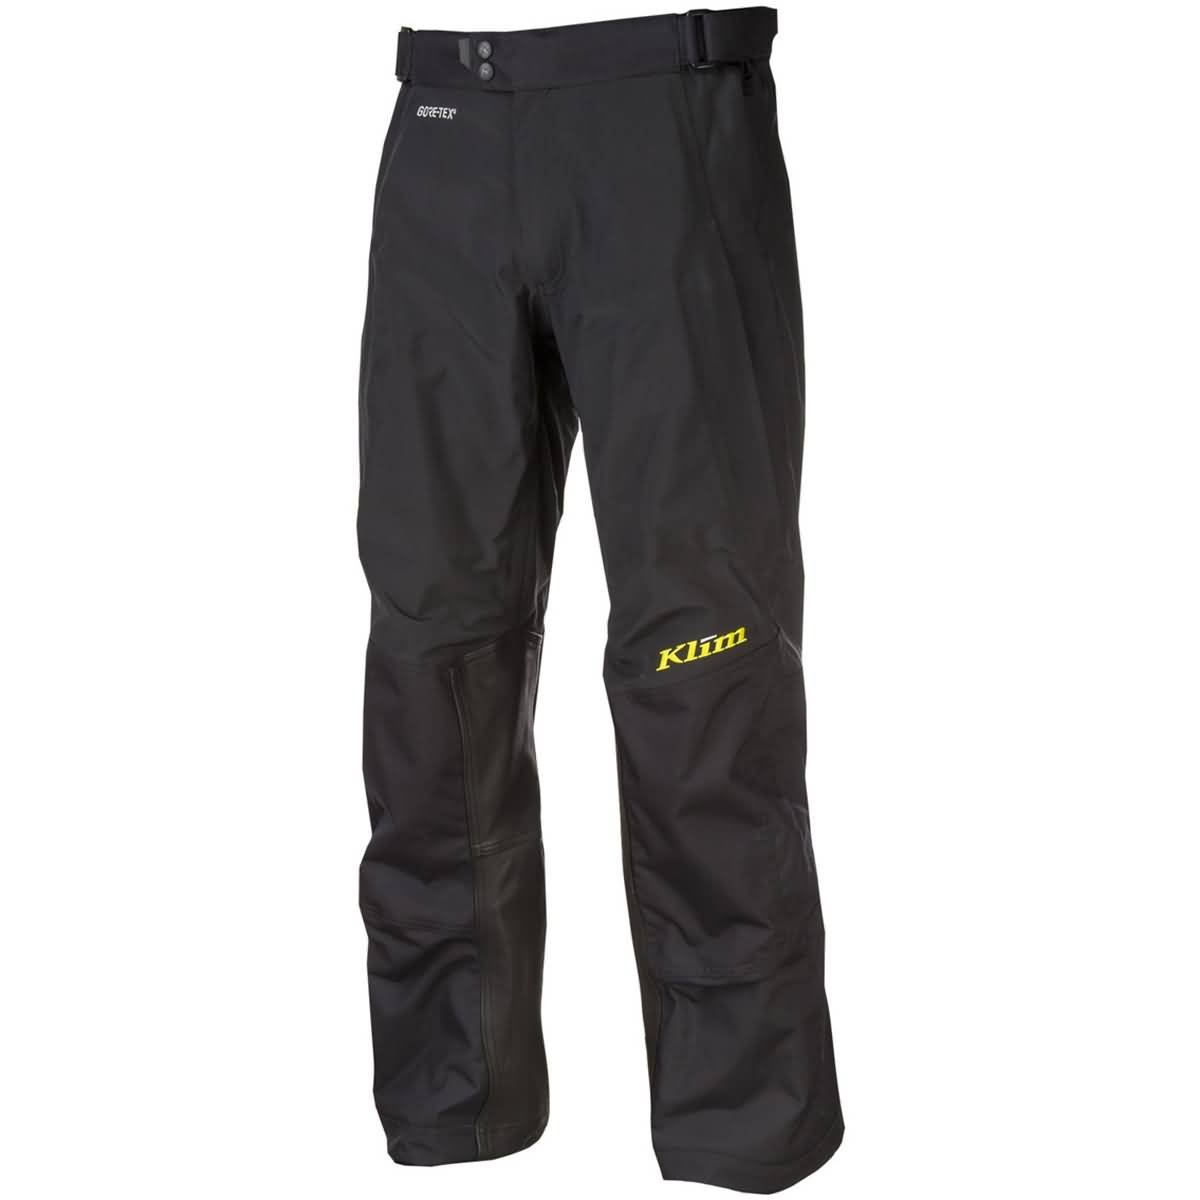 Klim Traverse Men's Off-Road Motorcycle Pants - Black/Tall 34